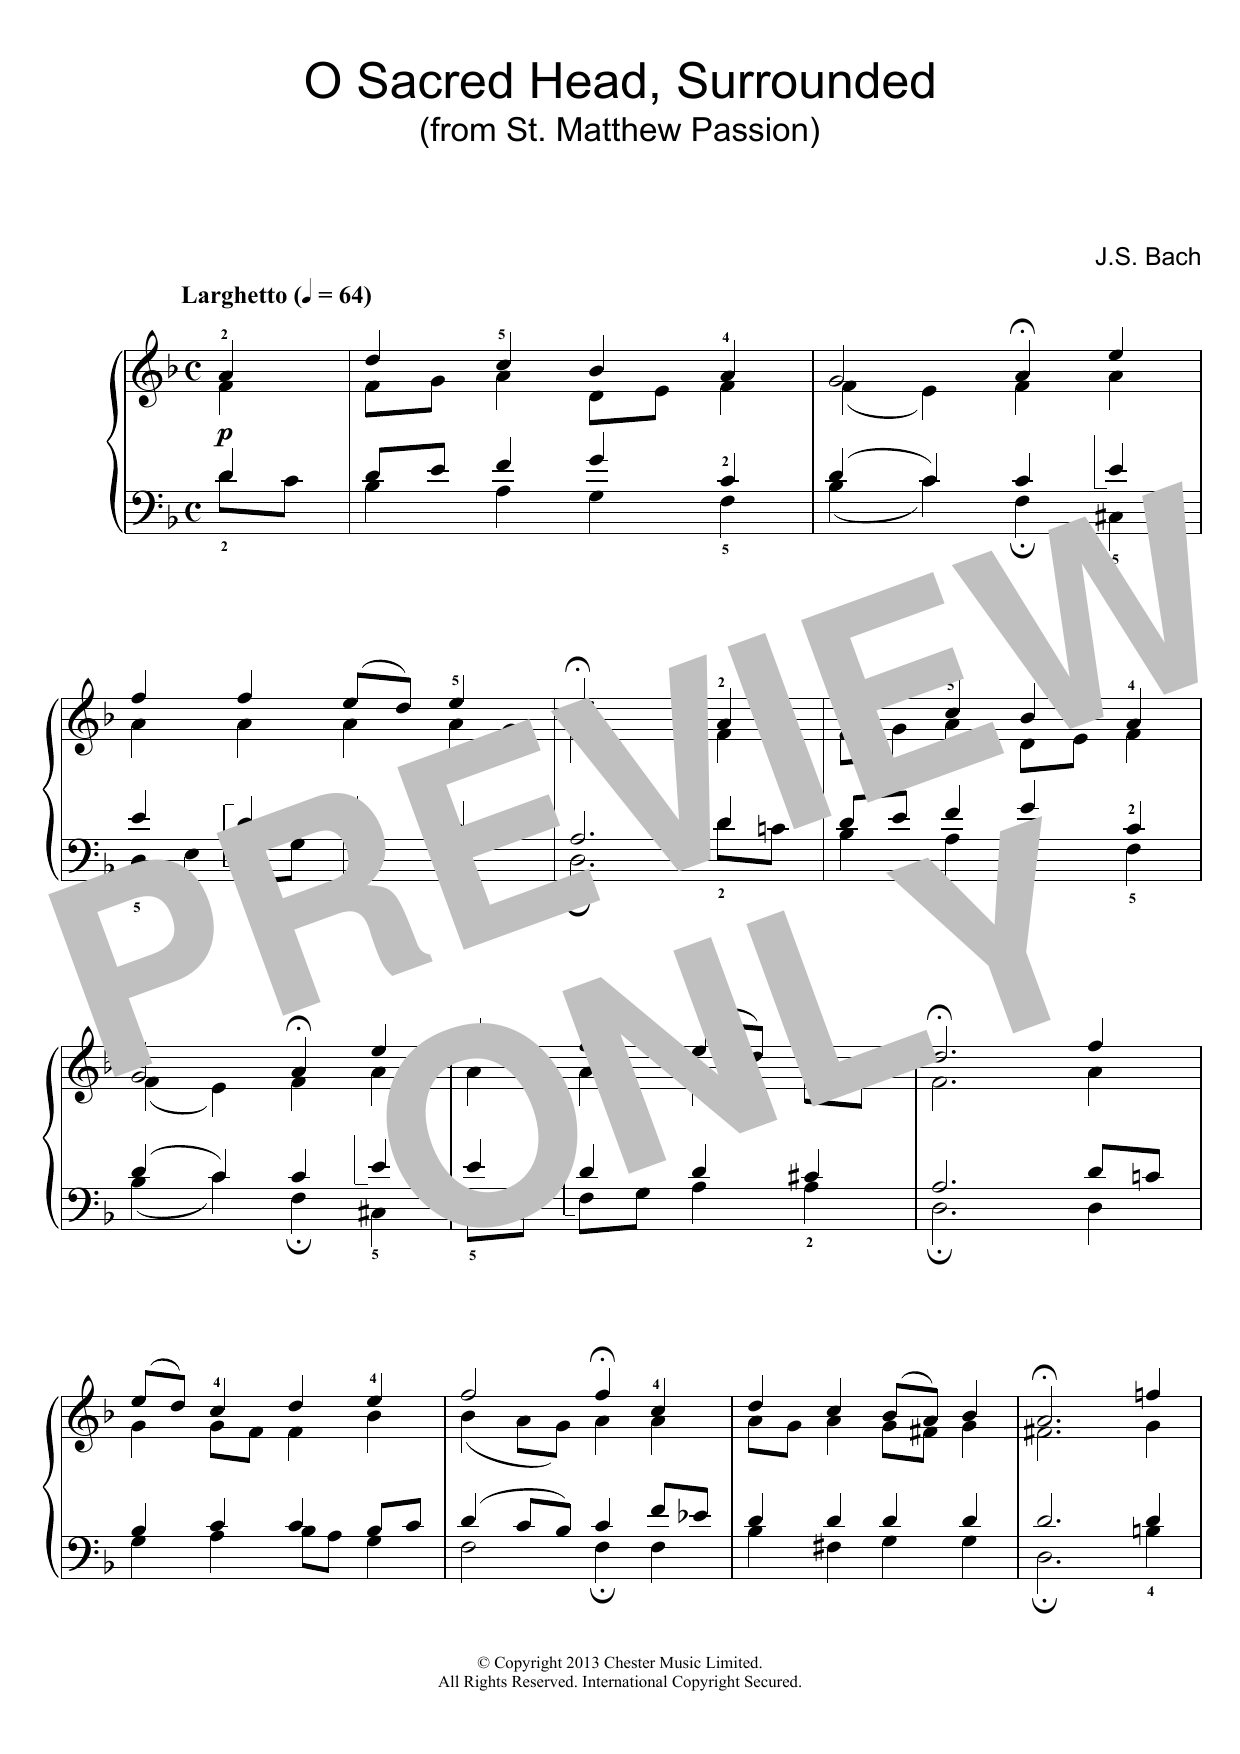 J.S. Bach O Sacred Head, Surrounded (from St Matthew Passion) sheet music preview music notes and score for Piano including 2 page(s)